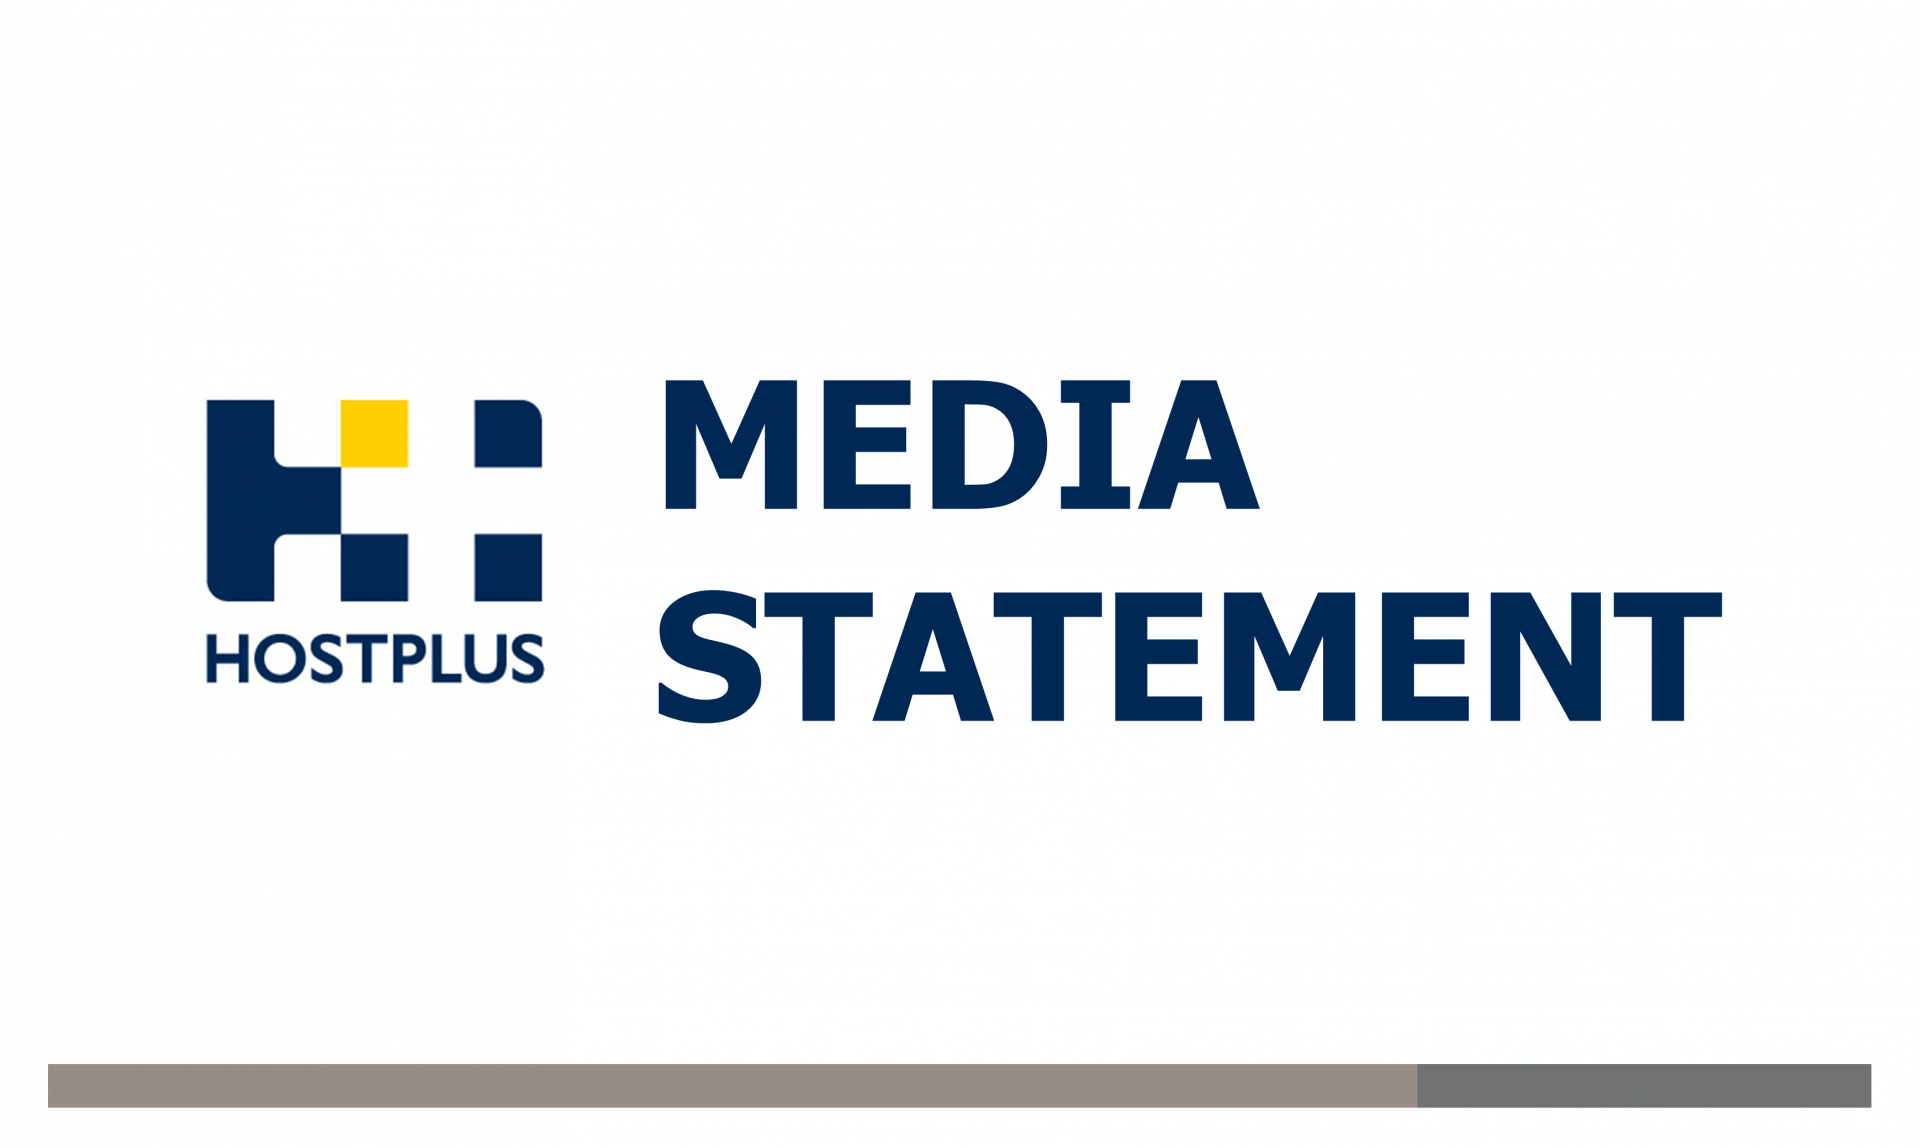 MEDIA STATEMENT_newsroom tablet_LARGE